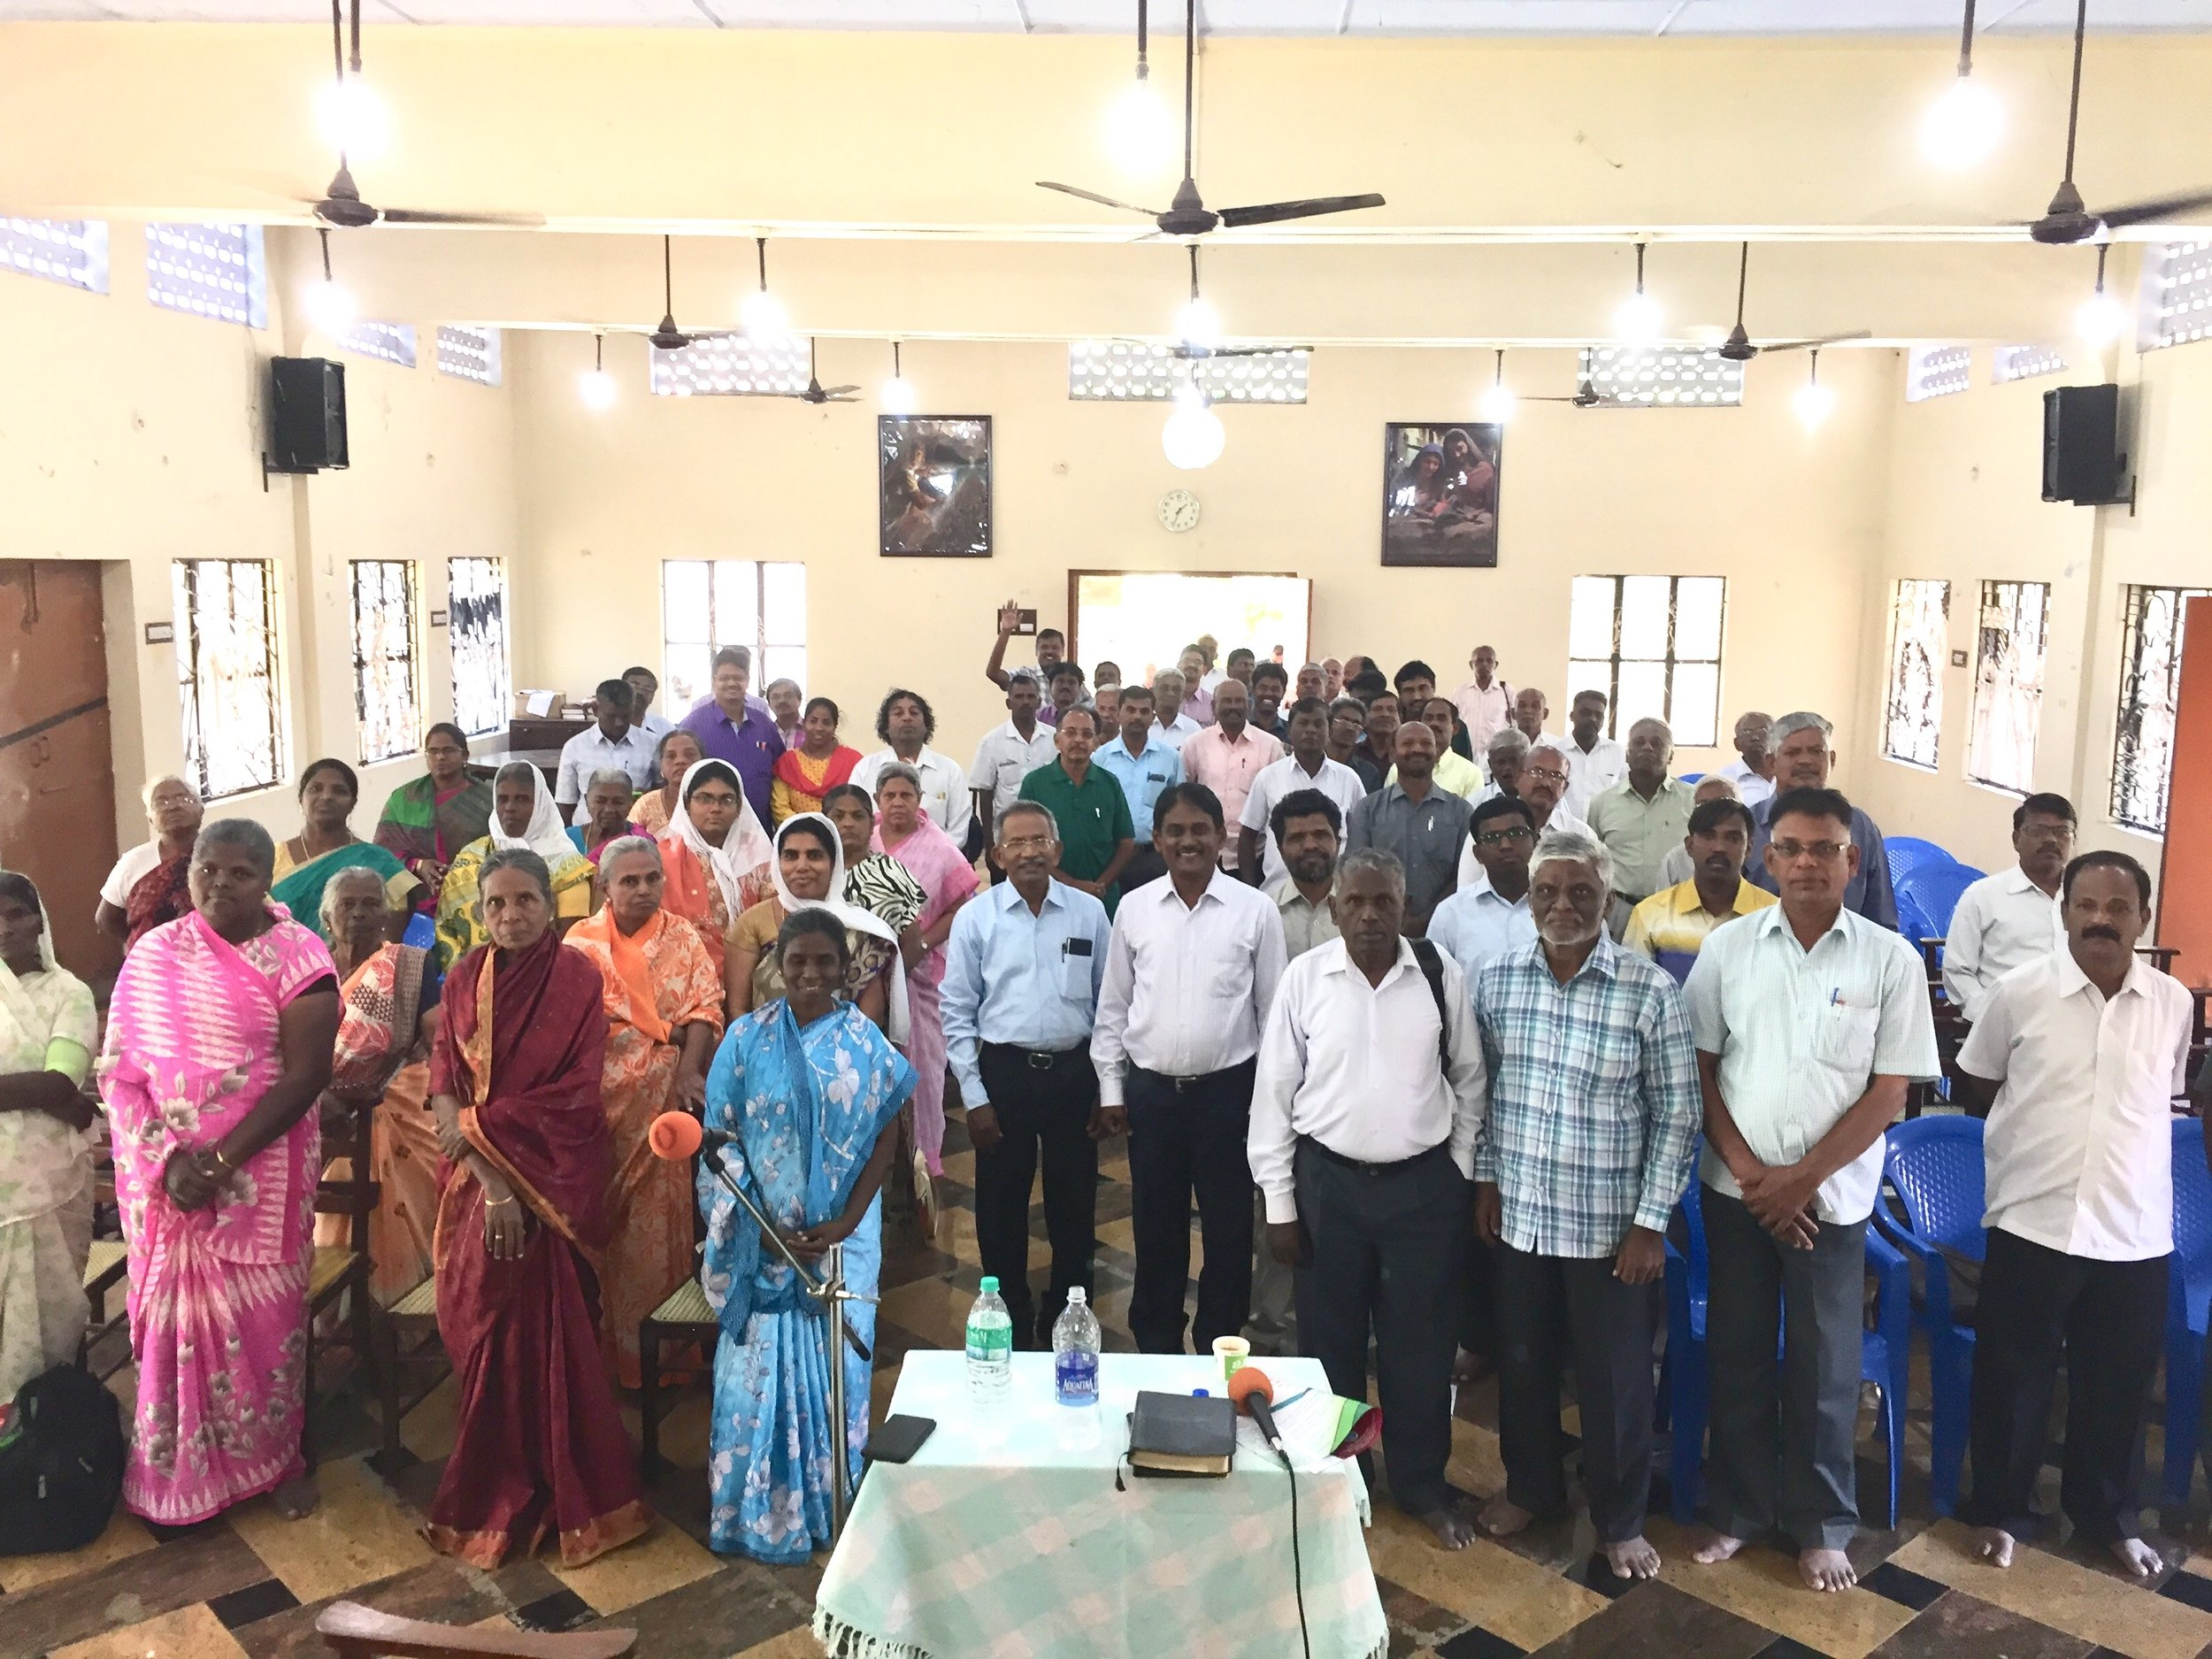 Independent Pastors Gathering February 1, 2018 at the Church of the Divine Patience, Railway District, Madurai, Tamil Nadu, India.